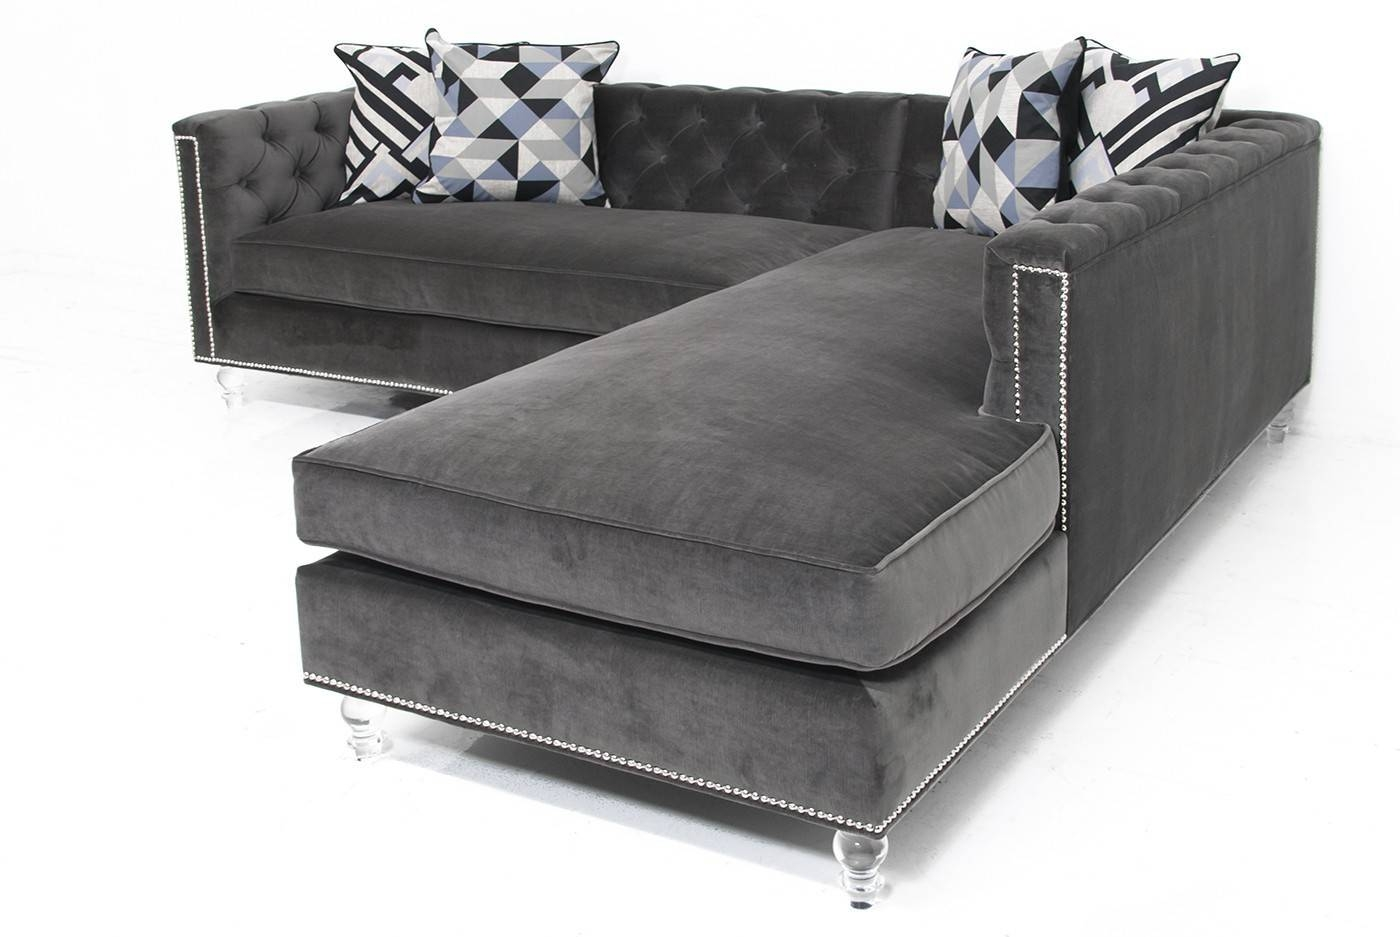 Sofa: Comfort And Style Is Evident In This Dynamic With Tufted throughout Velvet Sofas Sectionals (Image 17 of 25)